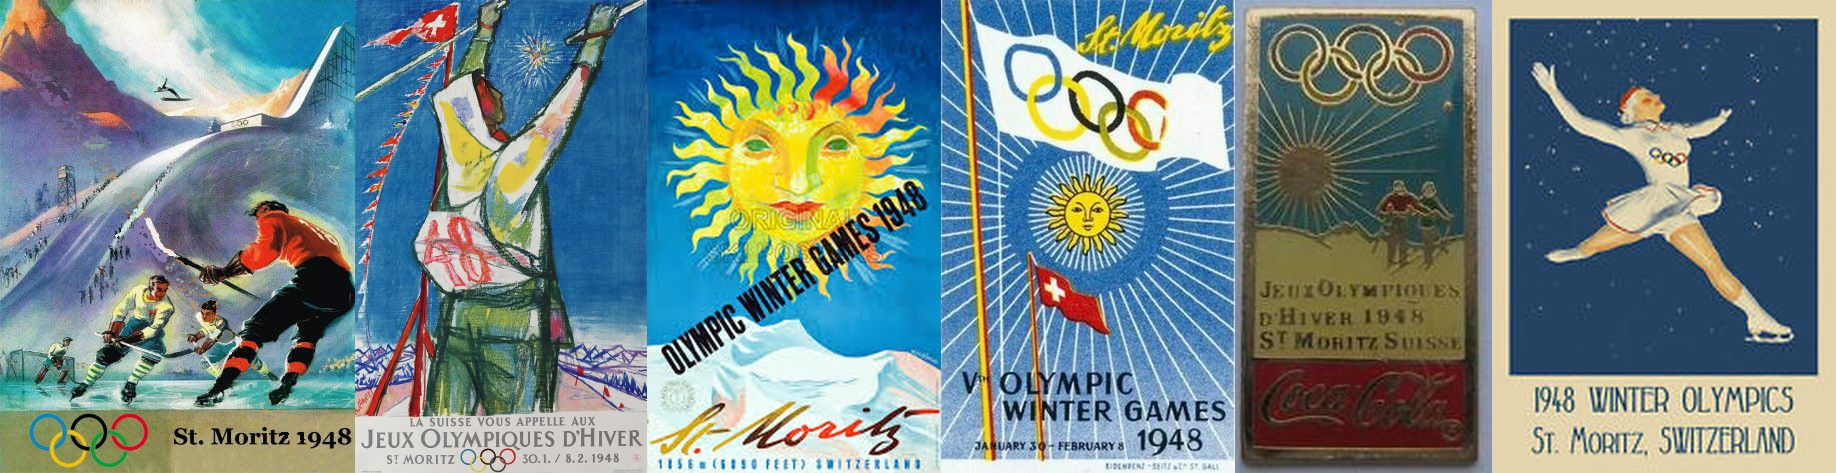 Photos: 1948 Winter Olympics Posters